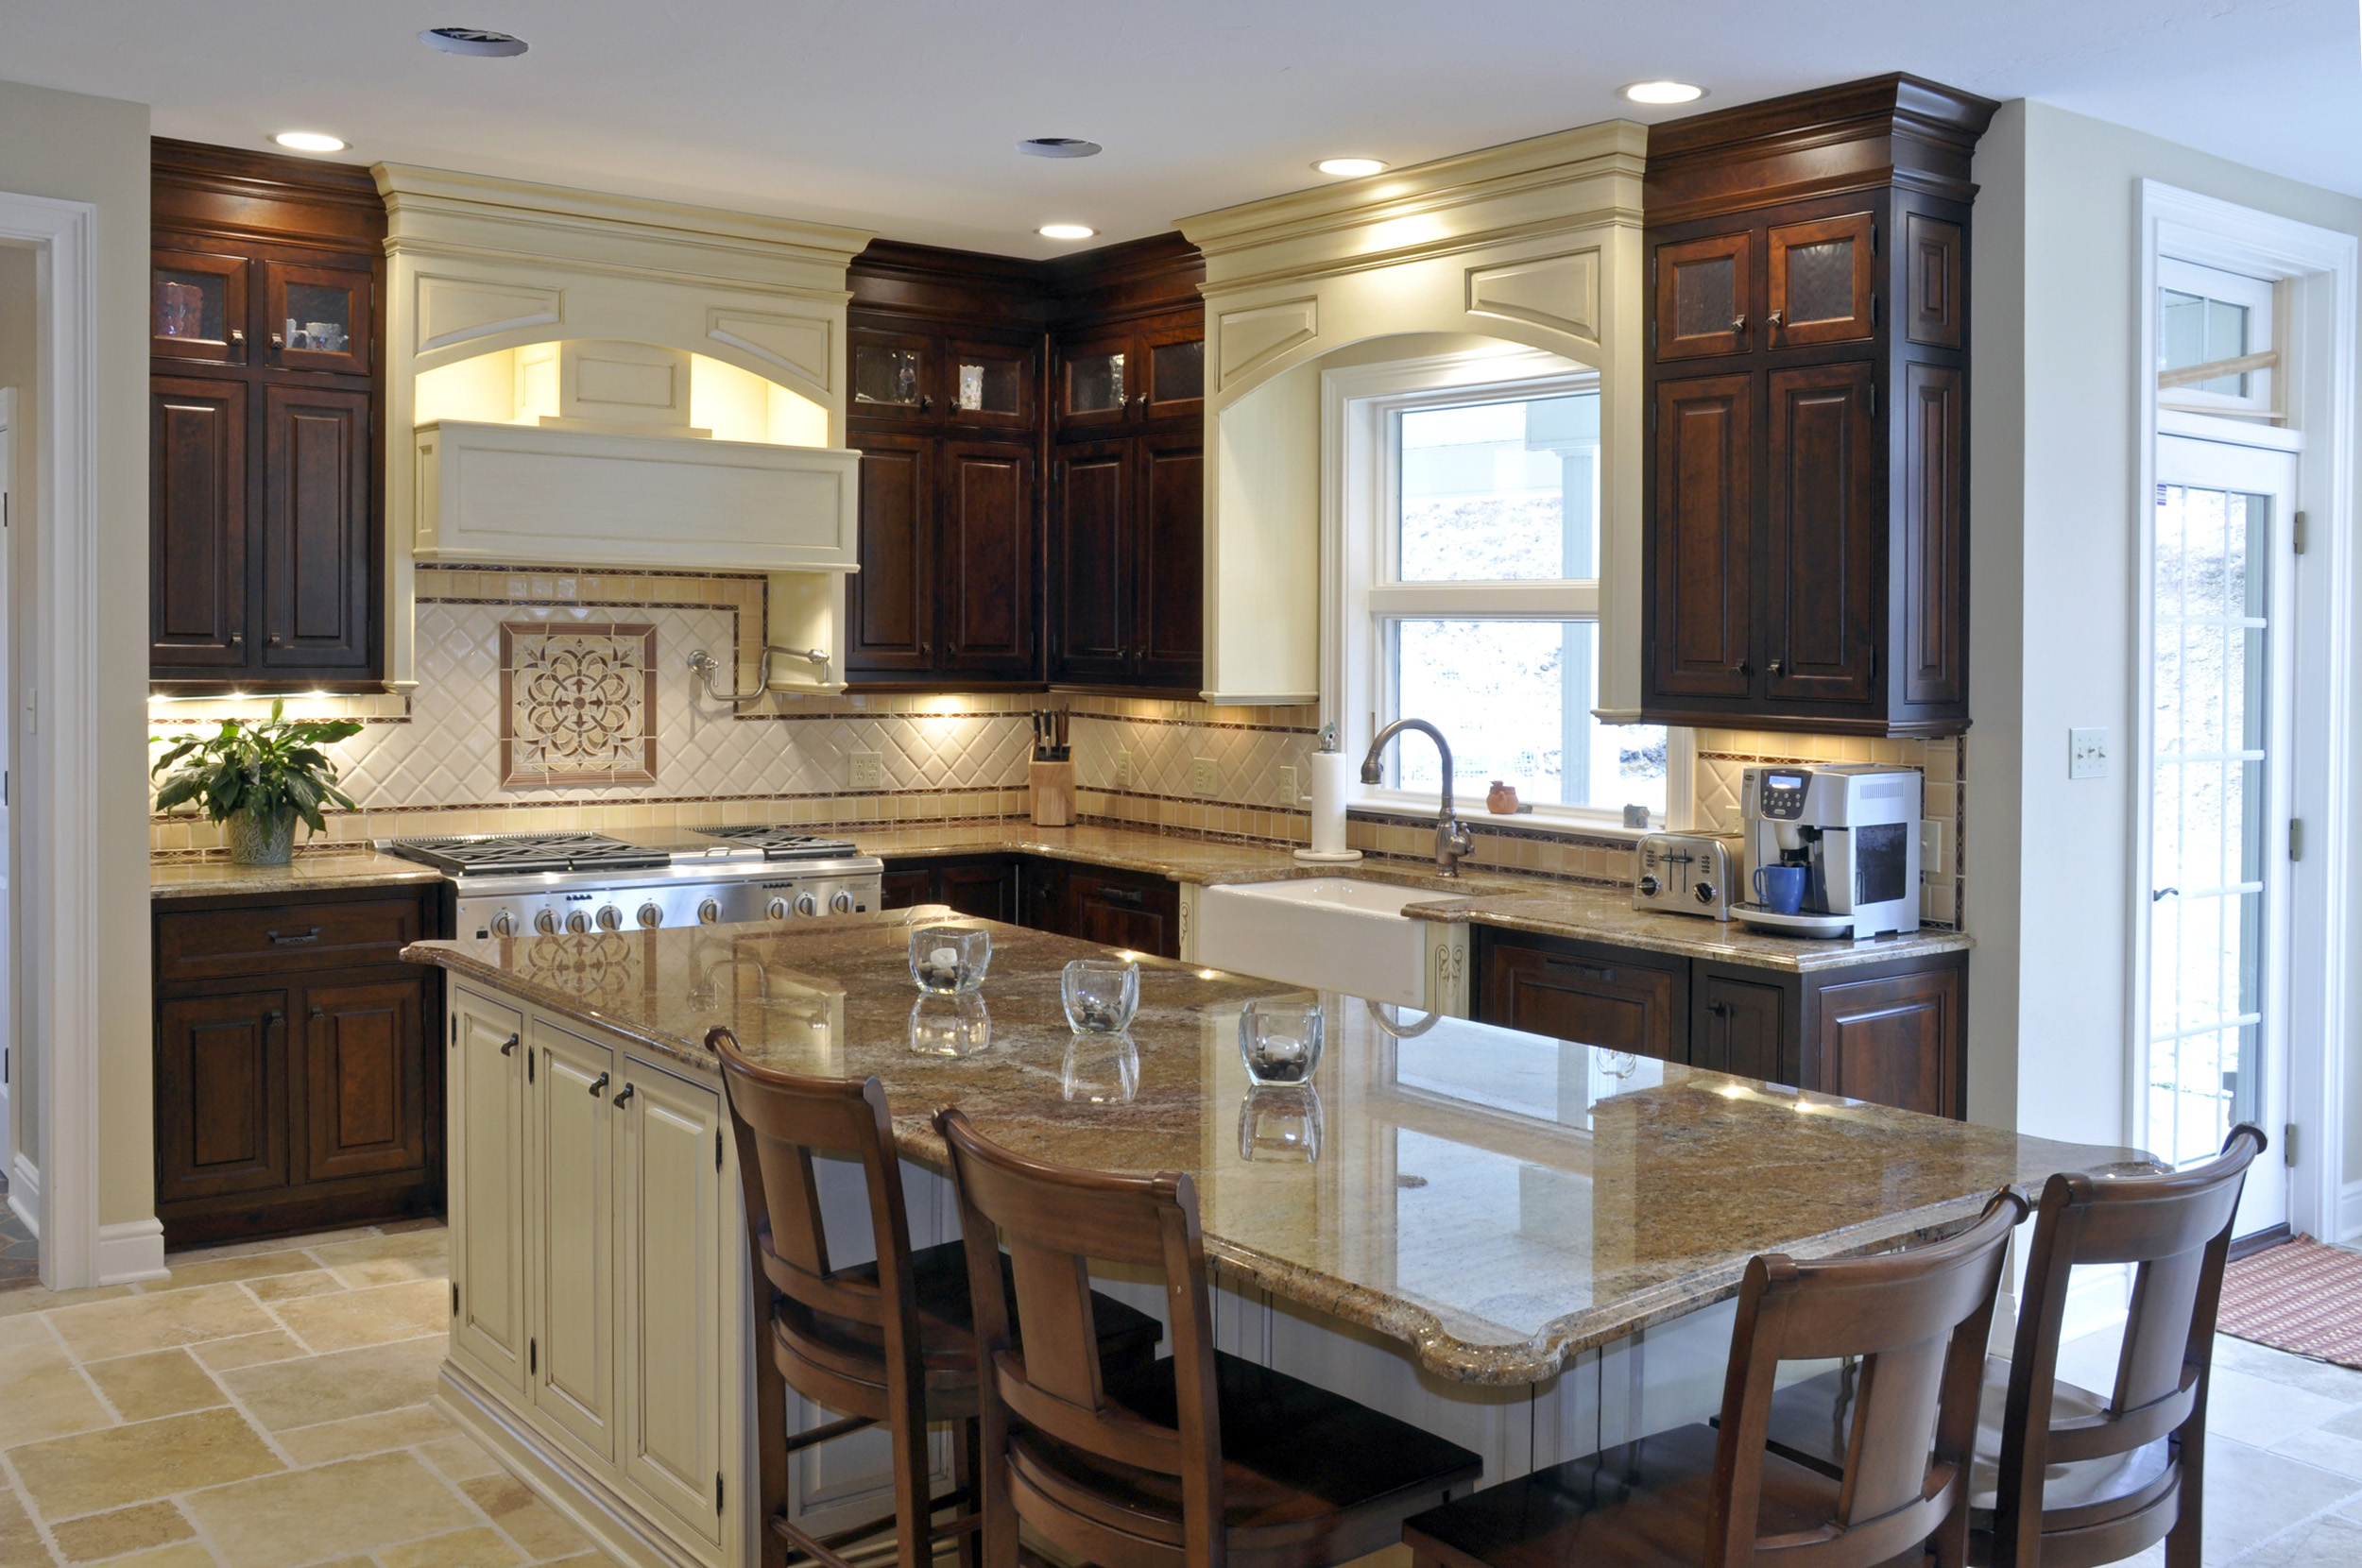 100 pittsburgh custom homes kitchen and a wall of windows illuminates this great room - Kitchen design pittsburgh ...